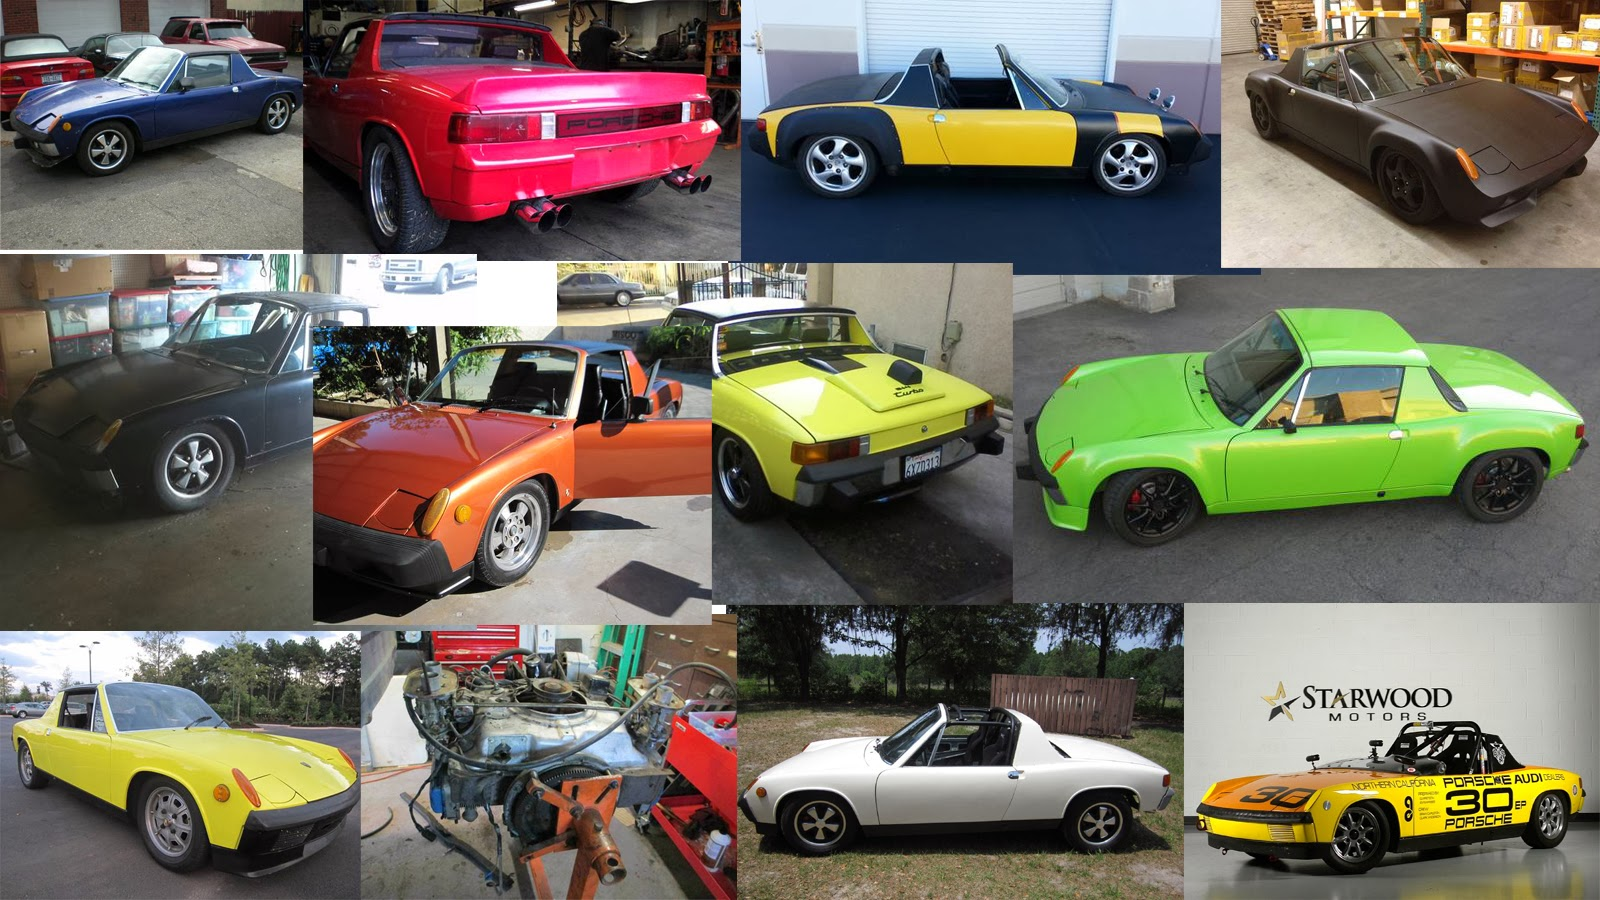 Market Update: Porsche 914 Cheaper By The Dozen; Featuring V8, WRX and13B Rotary Power